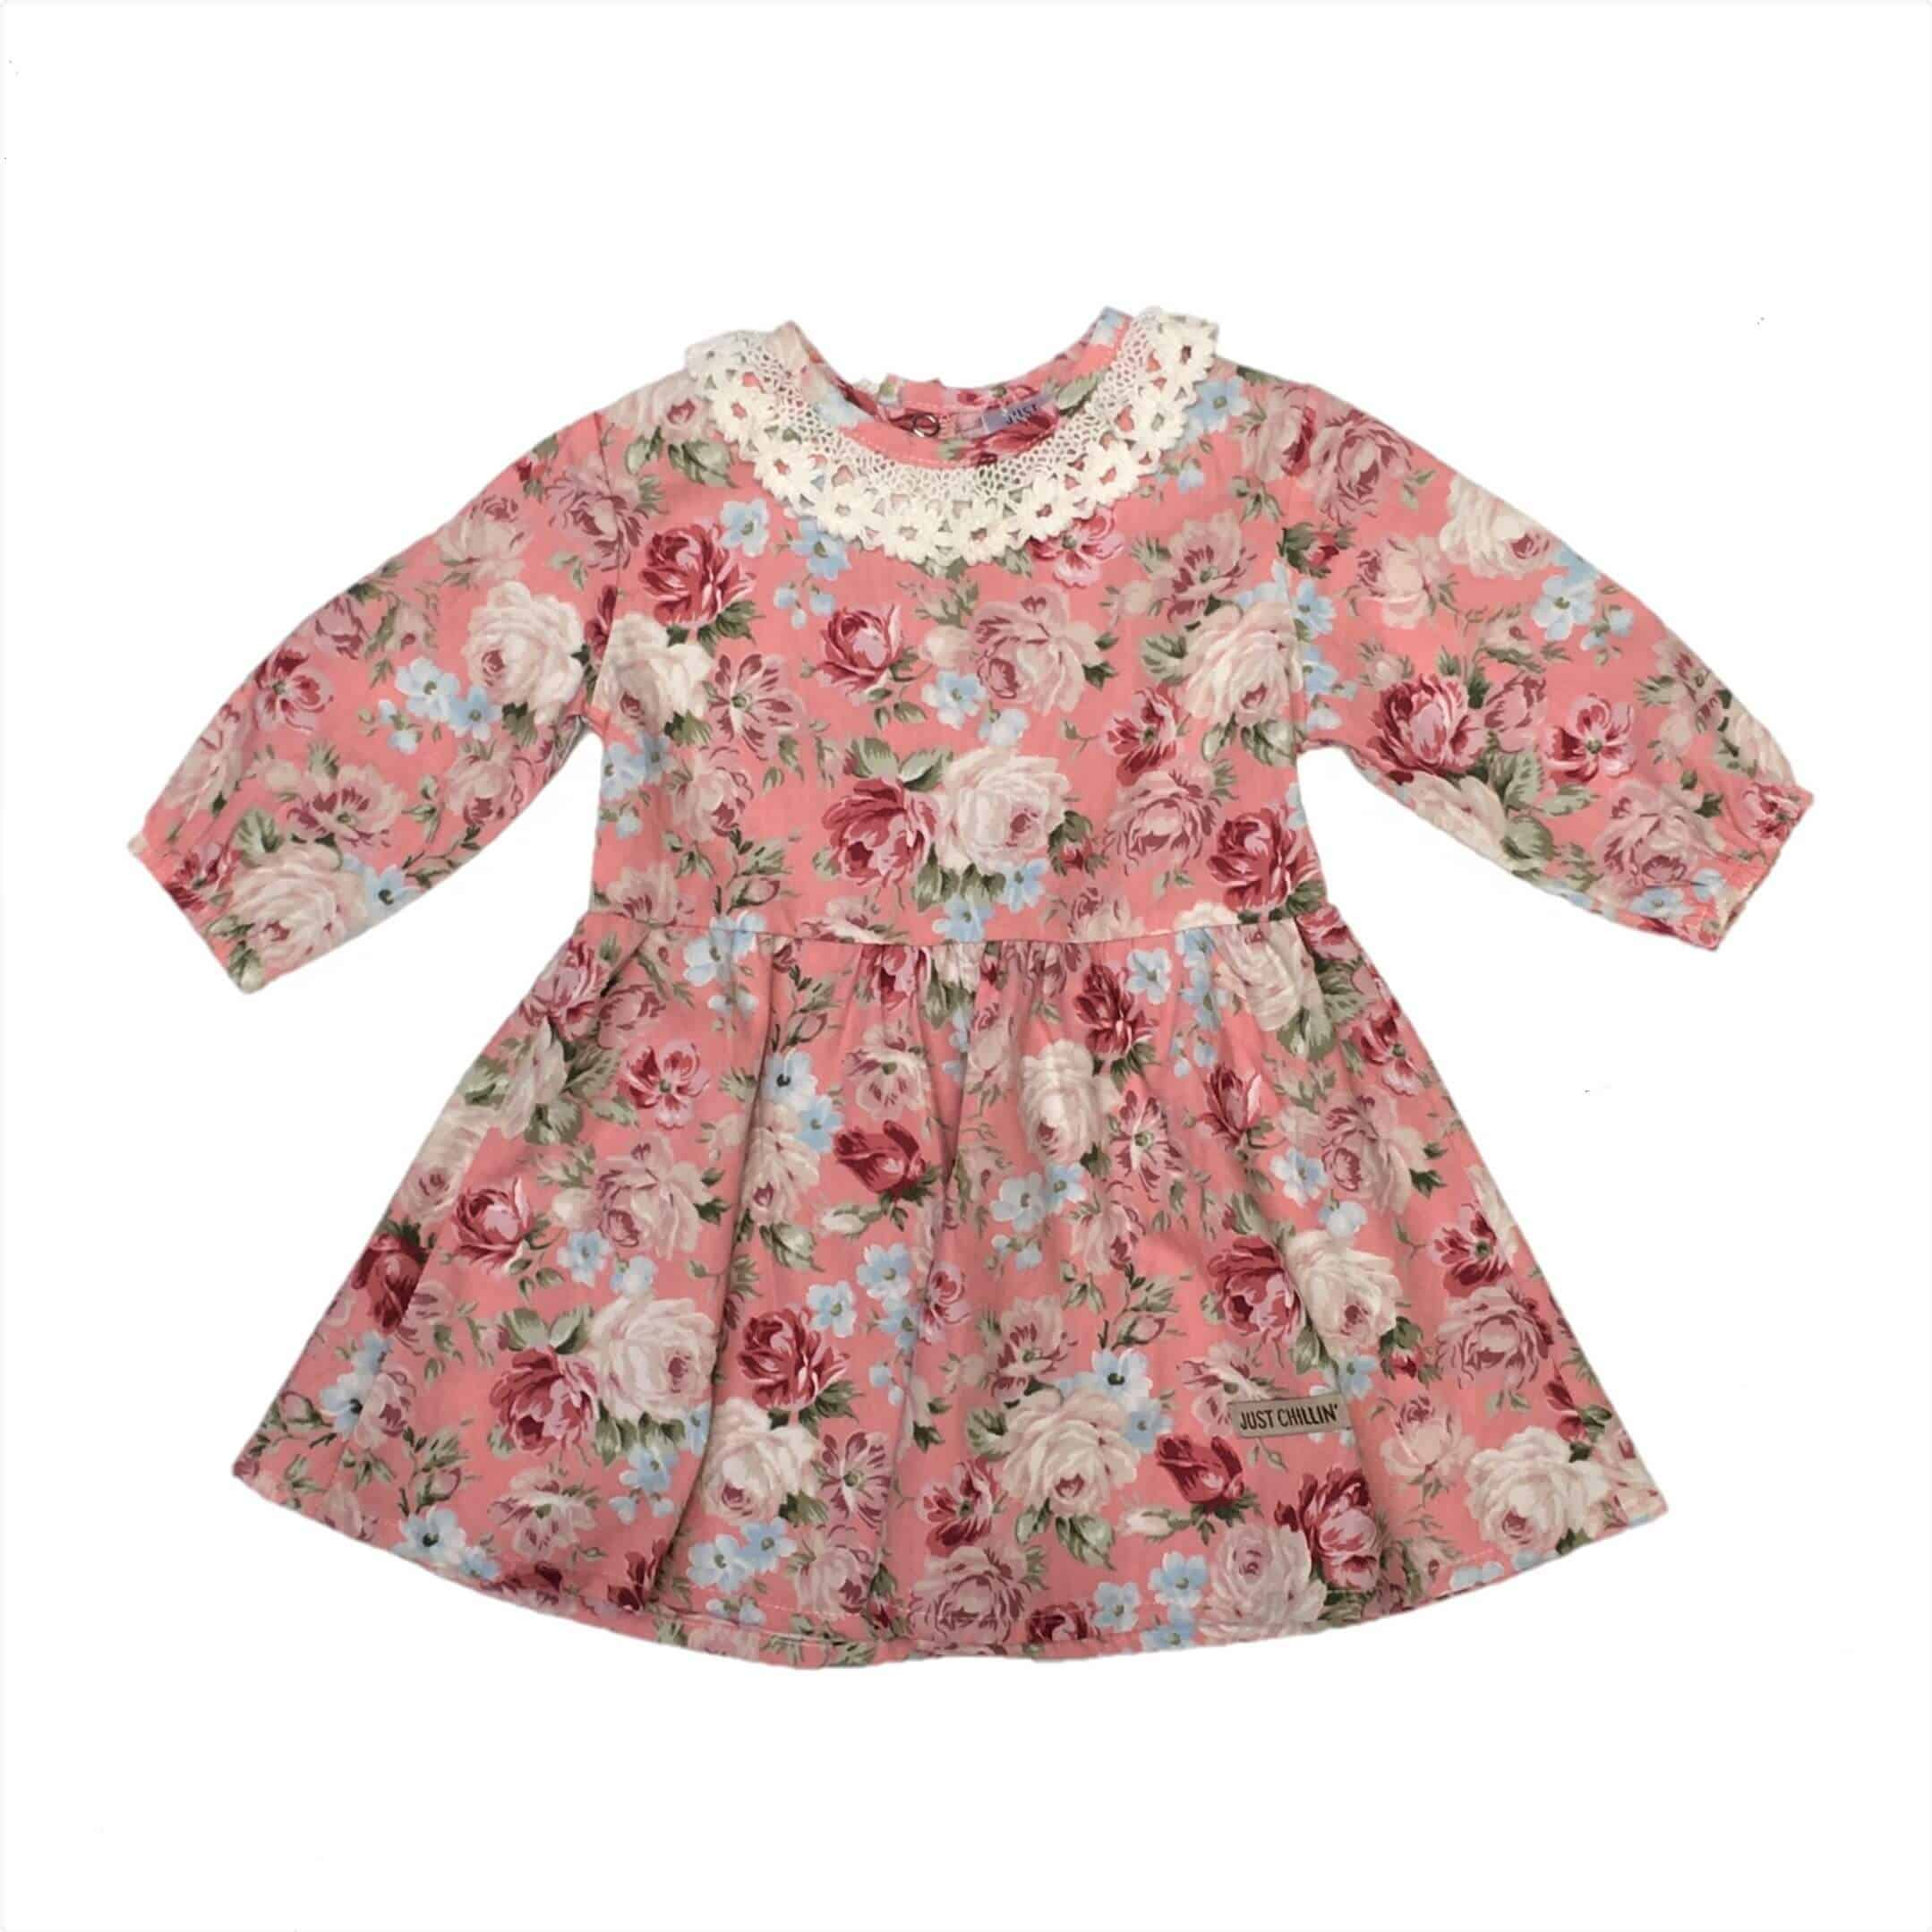 6e96df9508fef Girls Dress Peach - Just Chillin Baby Clothes Online South Africa